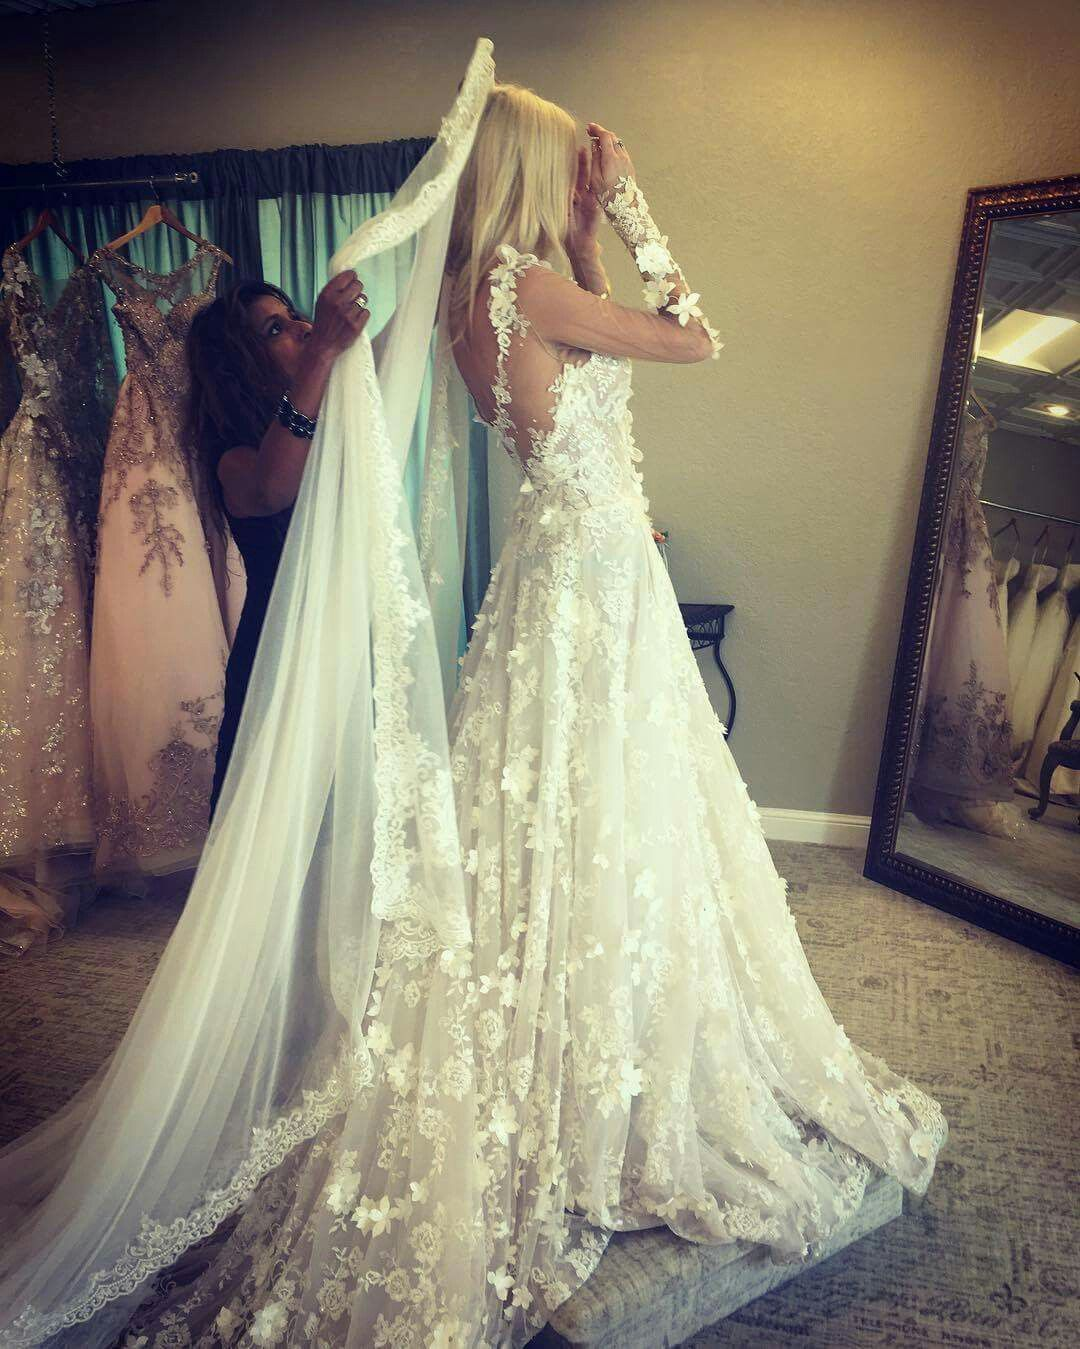 Trying on wedding dresses for the first time  Pin by Julia Rodríguez Díaz on Wedding Dresses  Pinterest  Wedding